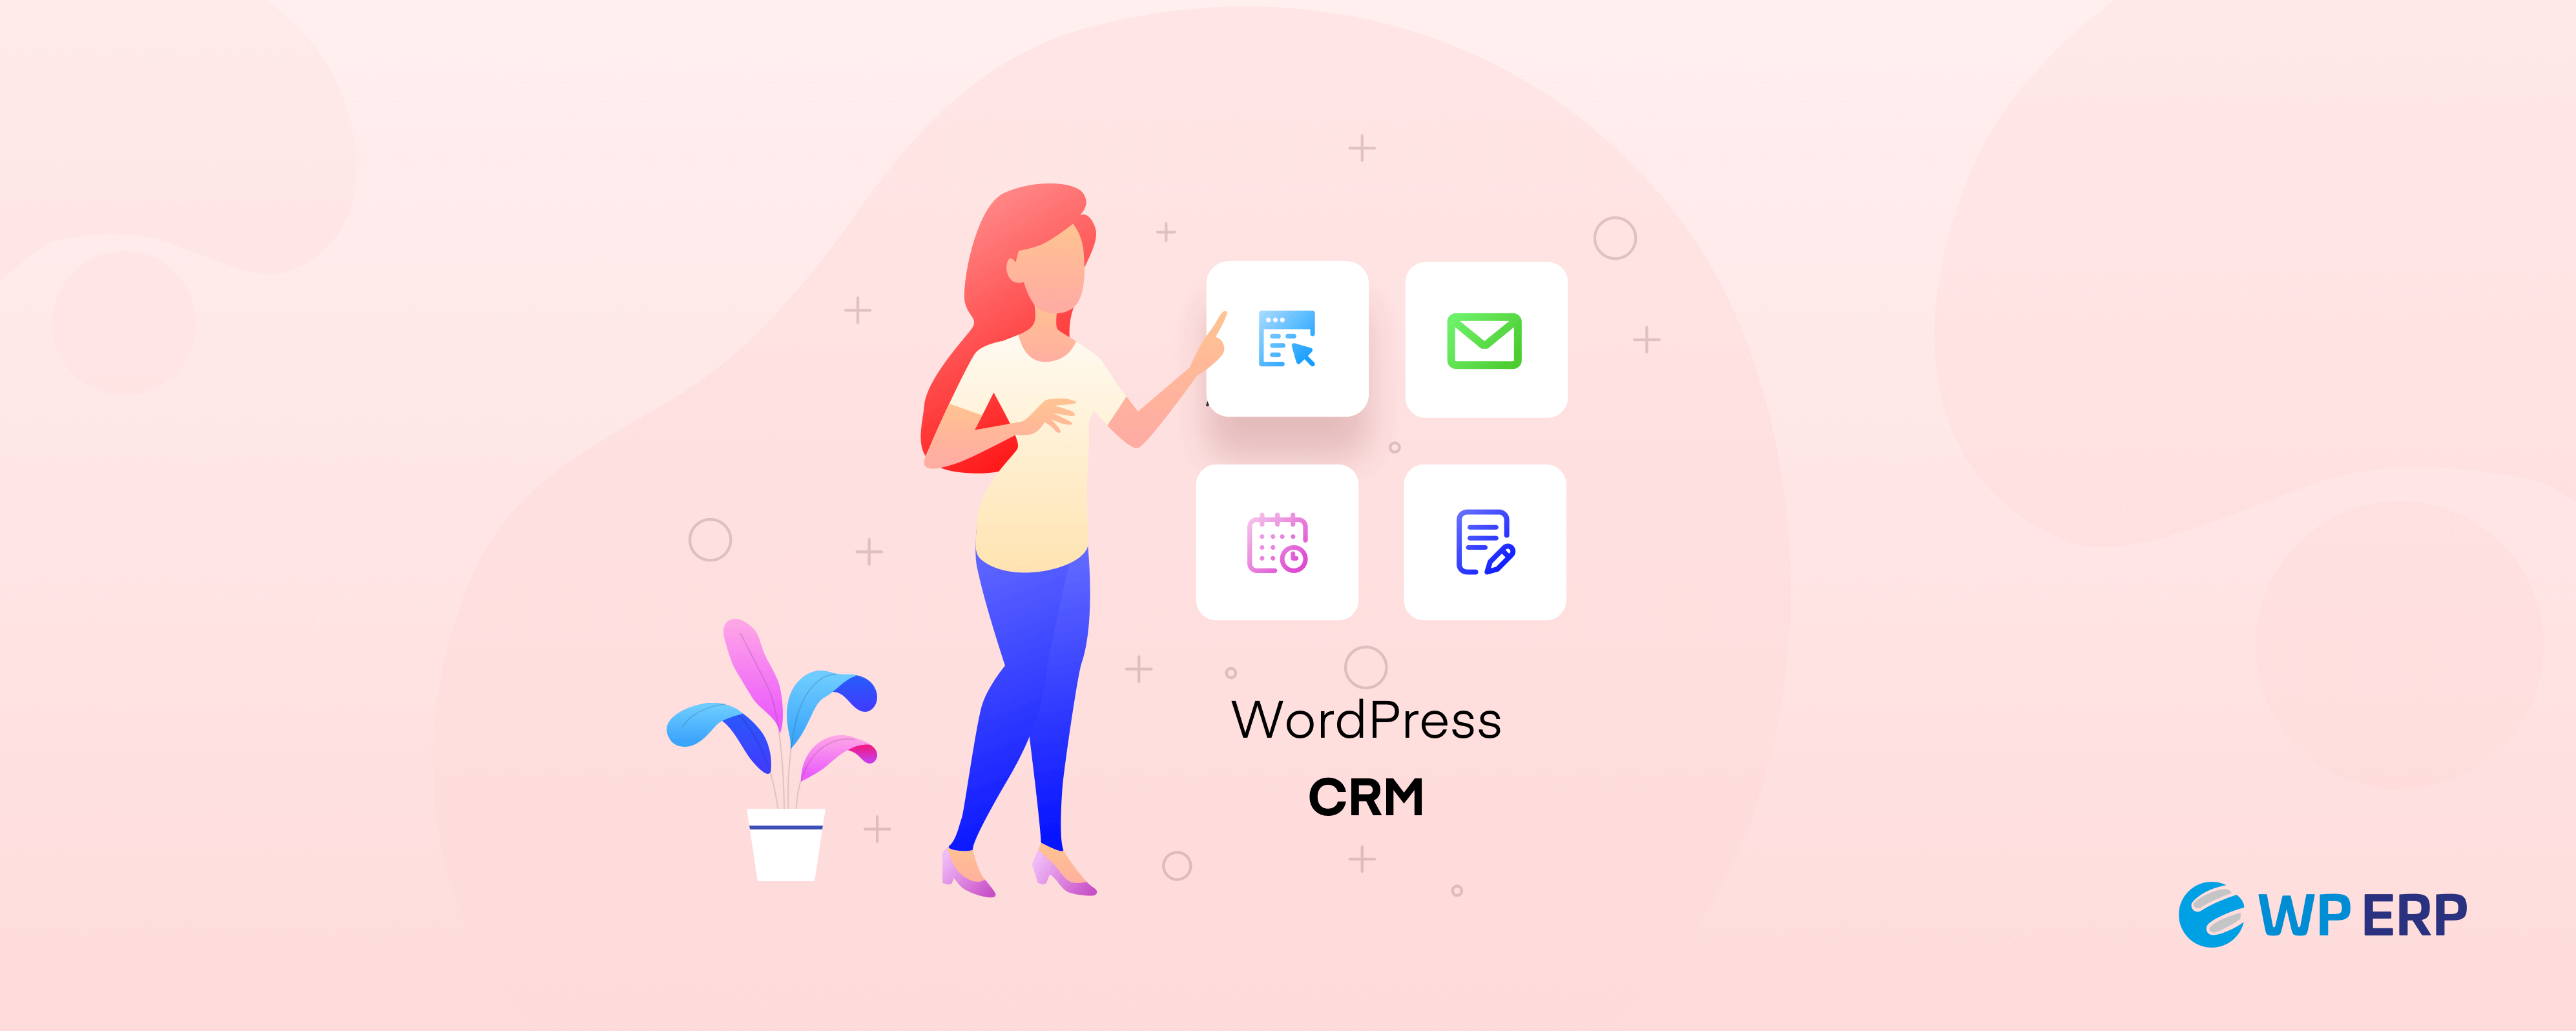 CRM software for SME's